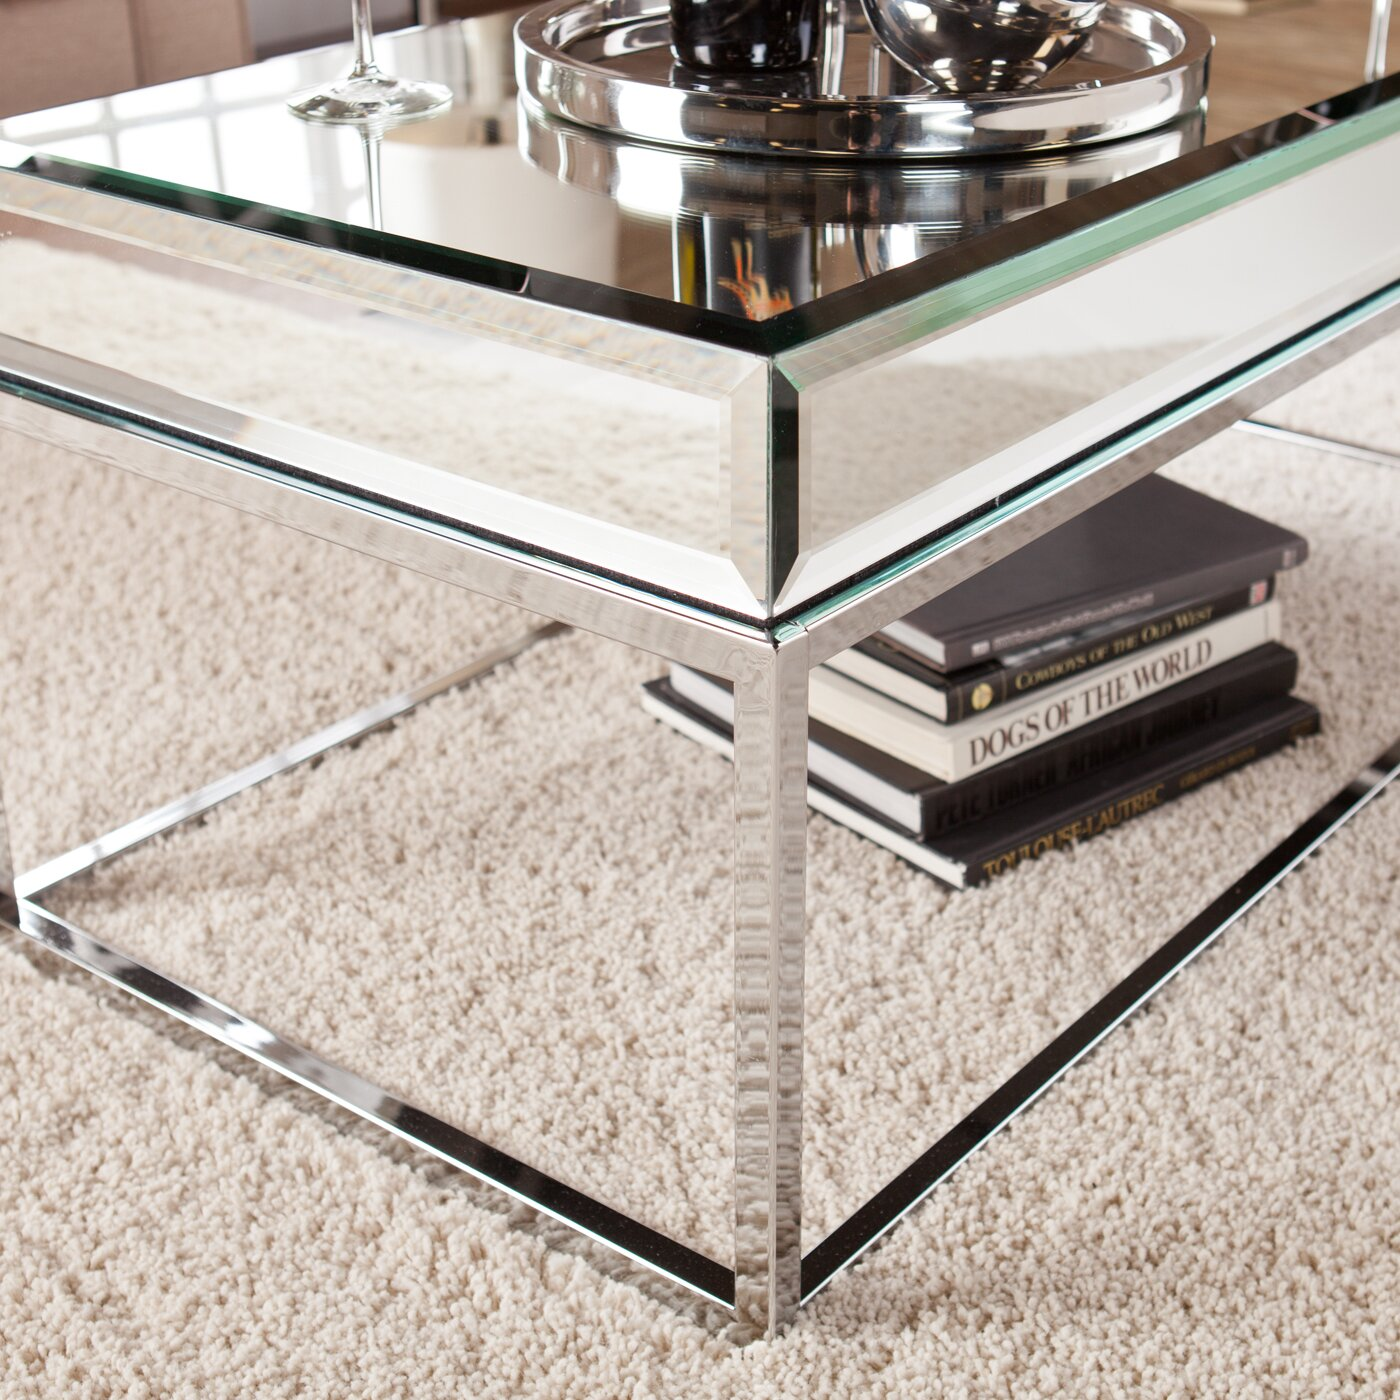 Wildon home r kyla mirrored coffee table reviews wayfair for Wayfair mirrored coffee table